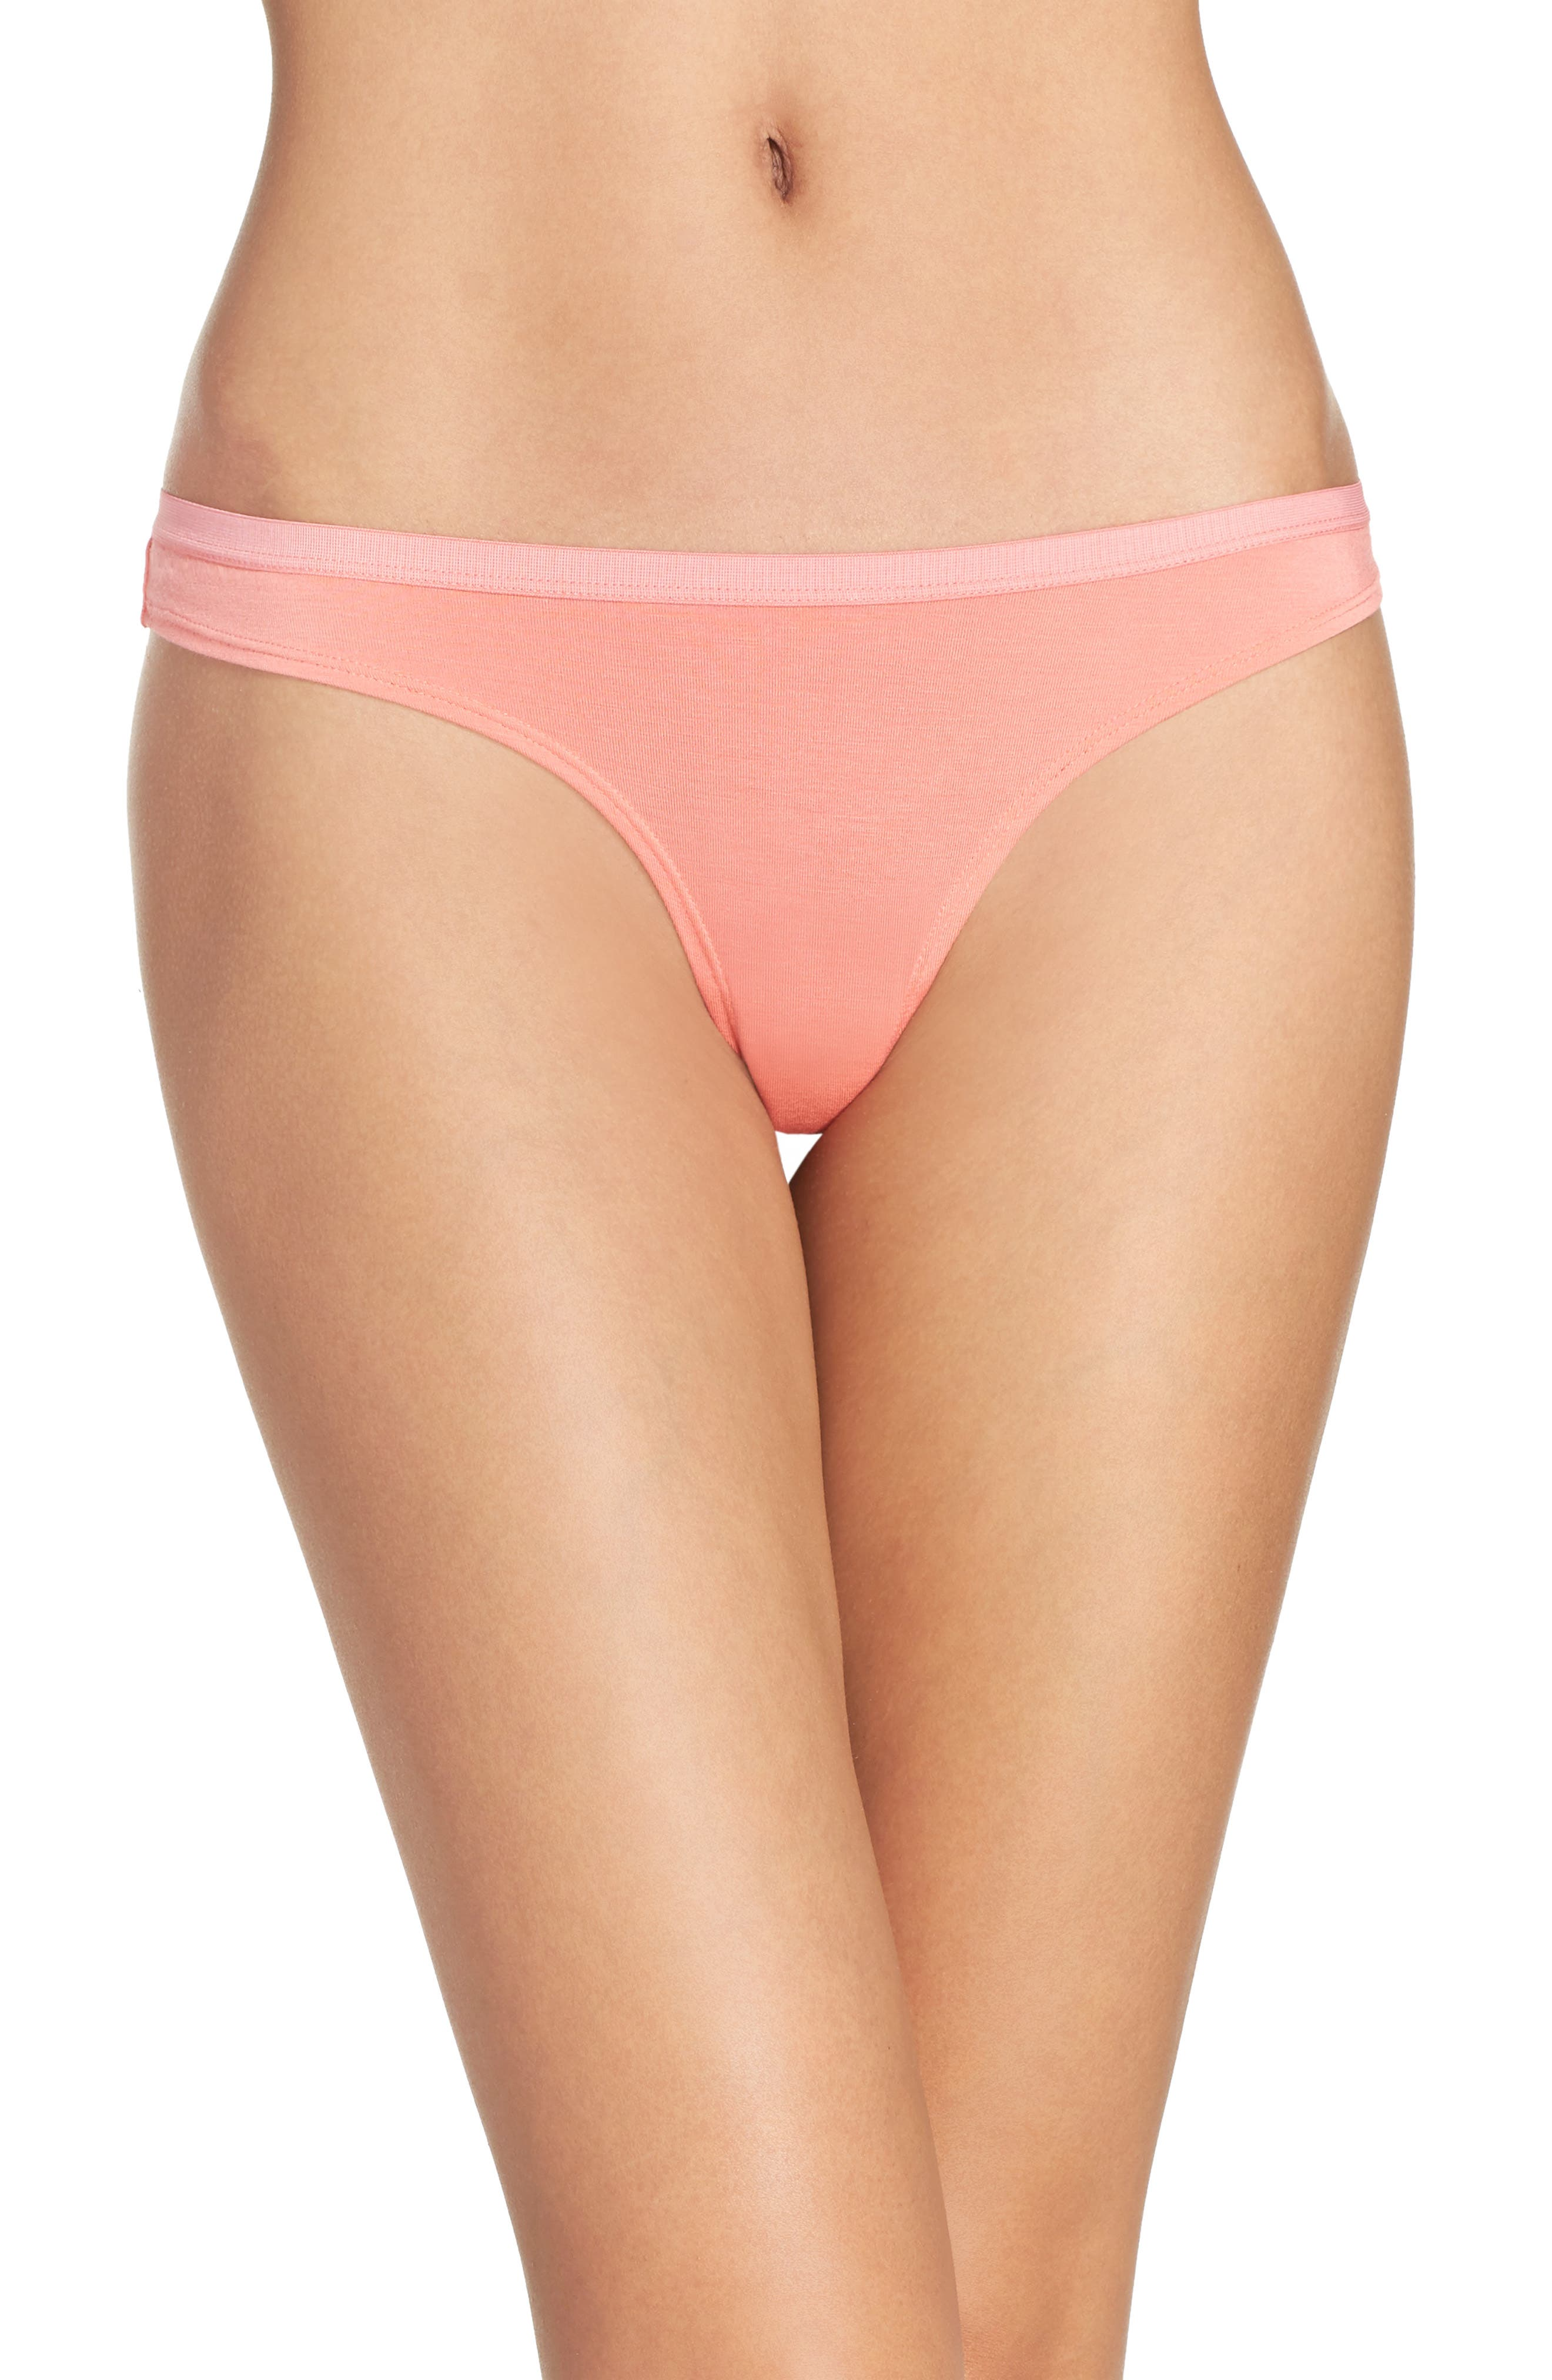 Chelsea28 Low Rise Thong